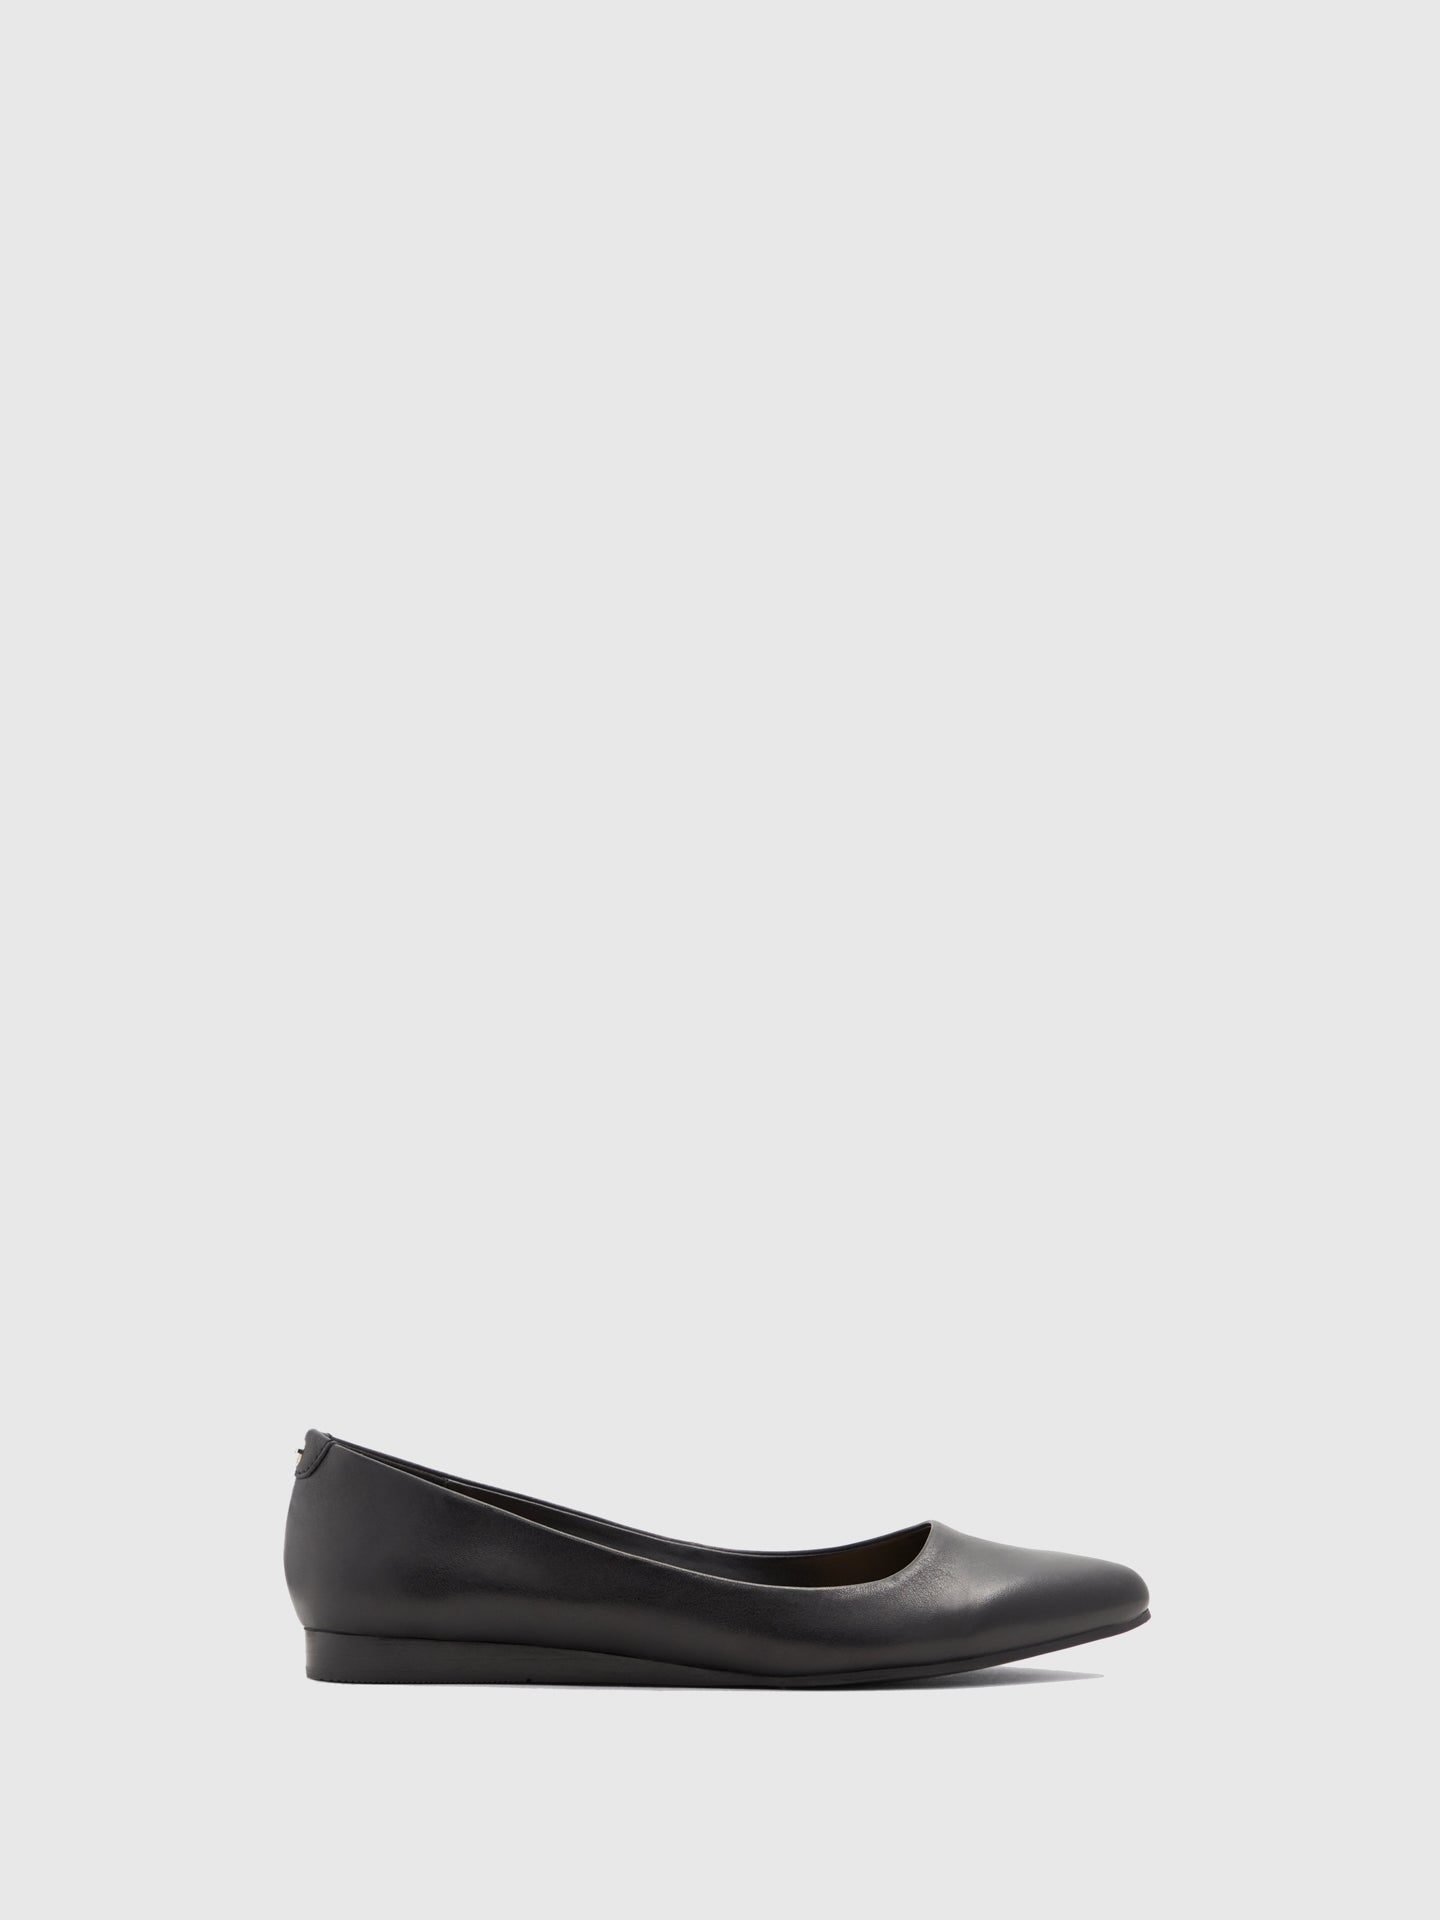 Aldo Black Pointed Toe Ballerinas